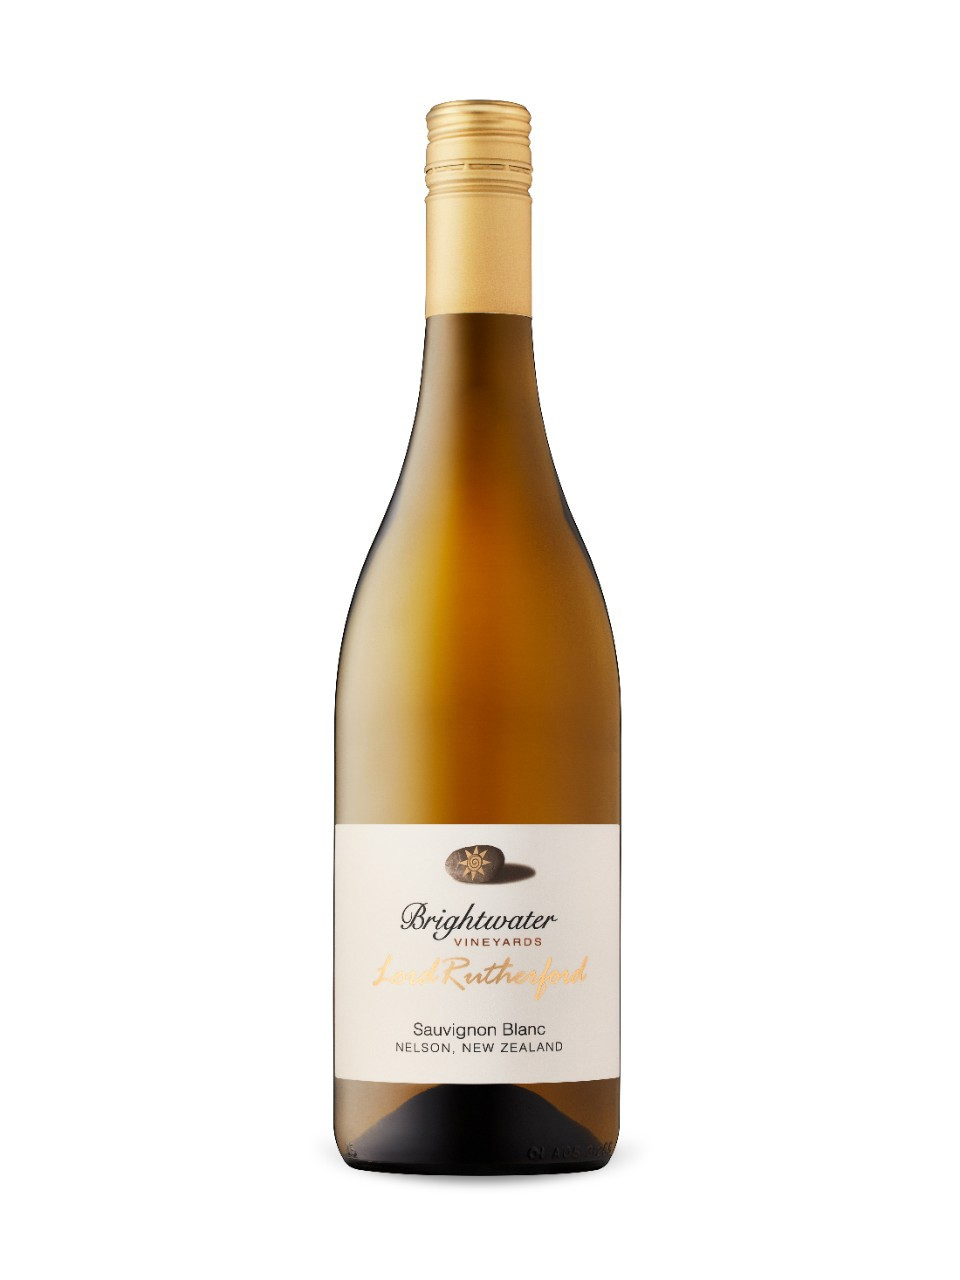 Lord Rutherford Sauvignon Blanc 2016